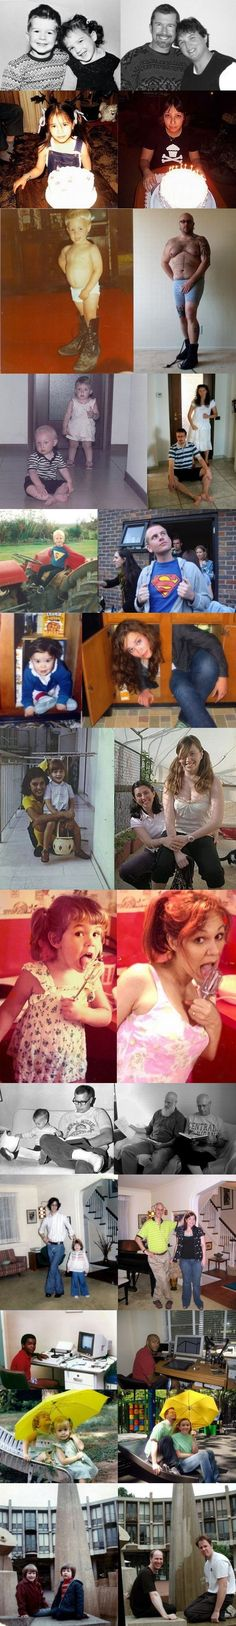 Recreating childhood photos...hilarious! Great gift idea for parents.